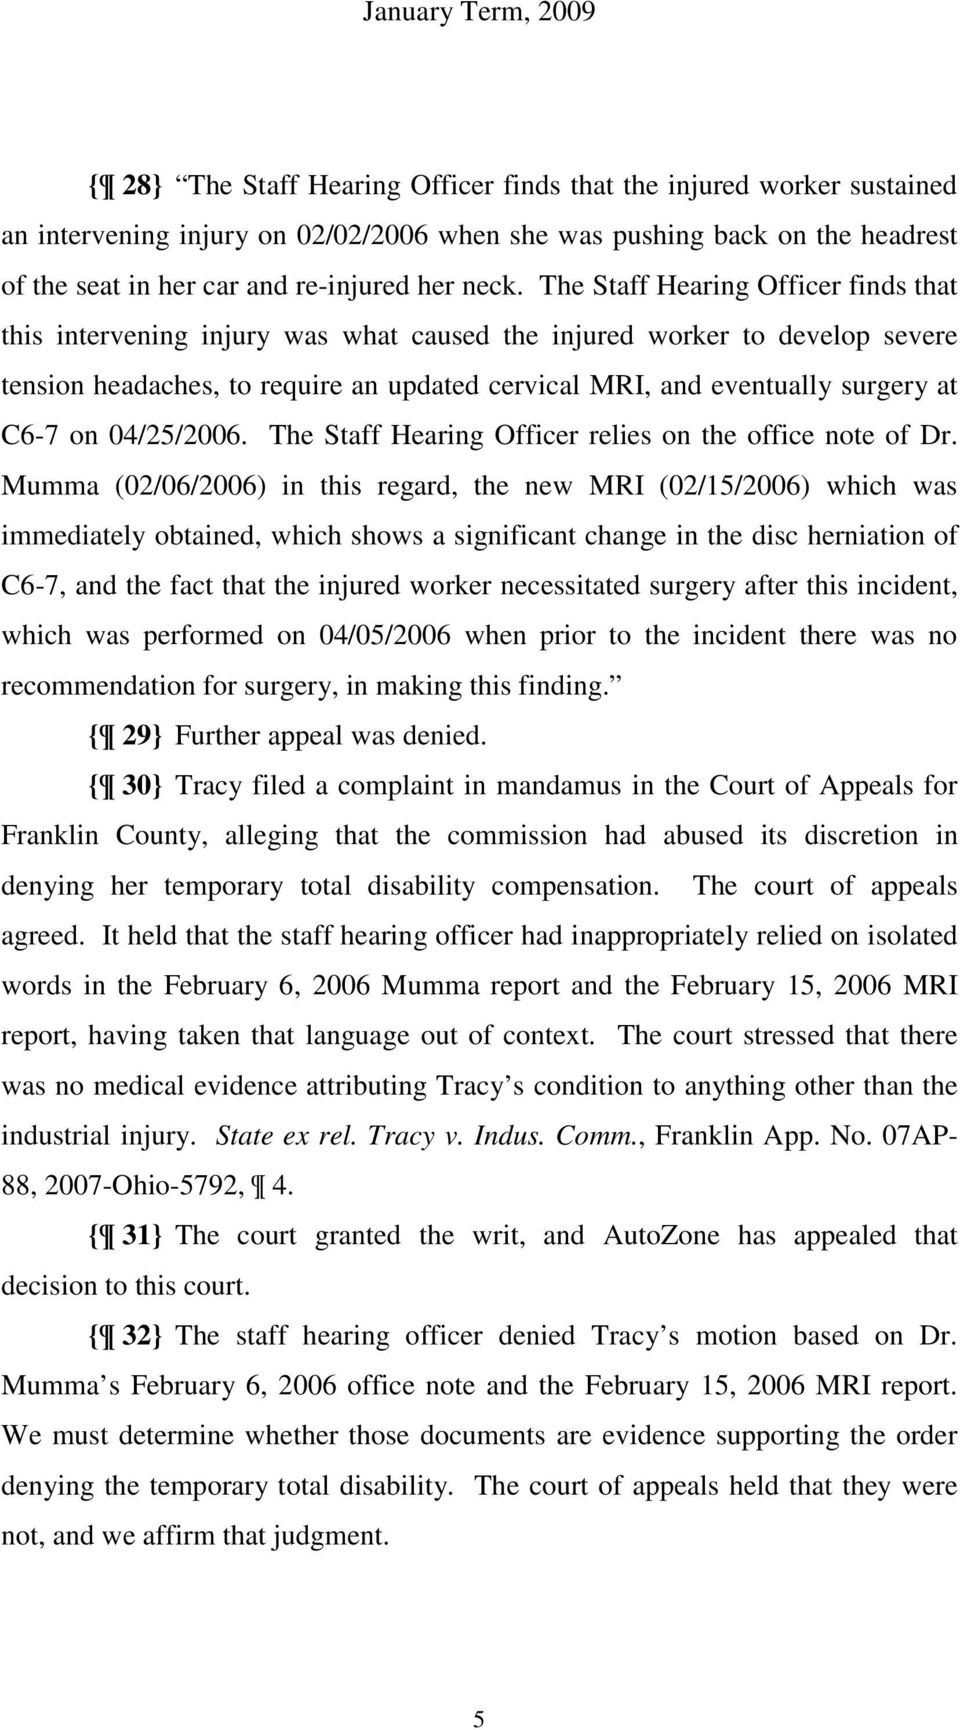 on 04/25/2006. The Staff Hearing Officer relies on the office note of Dr.